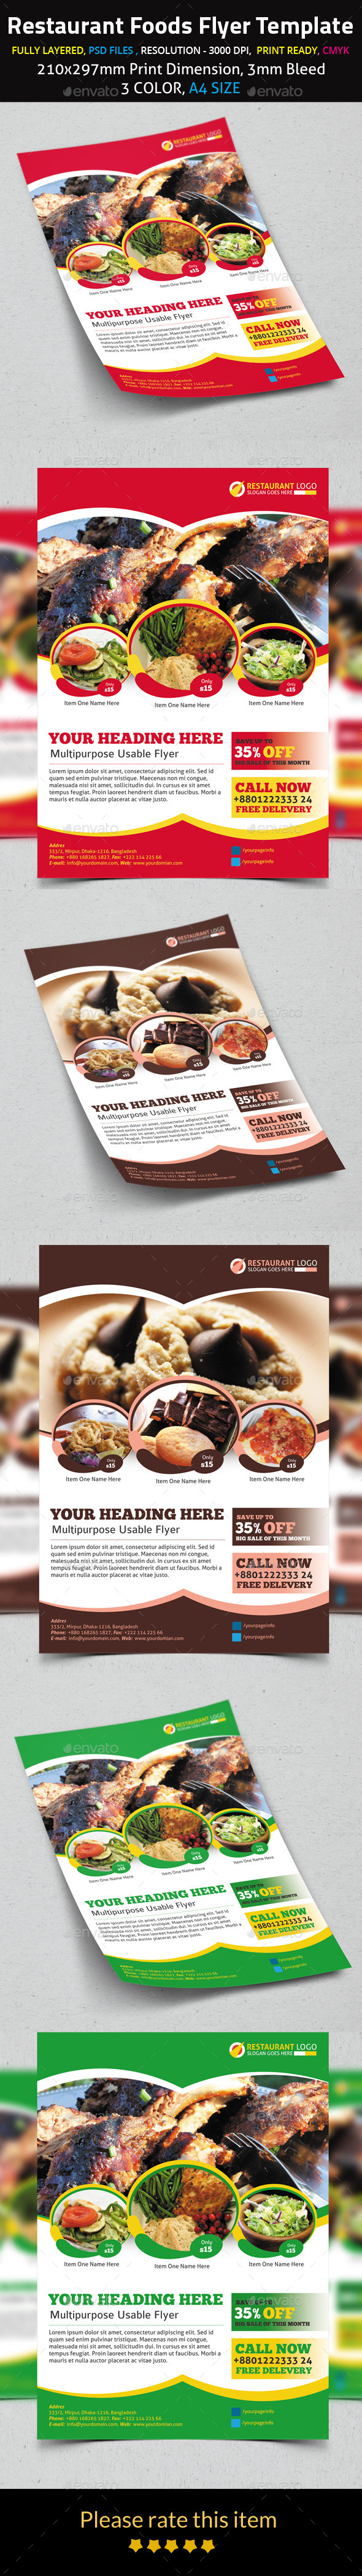 Restaurant Foods Flyer Template - Flyers Print Templates